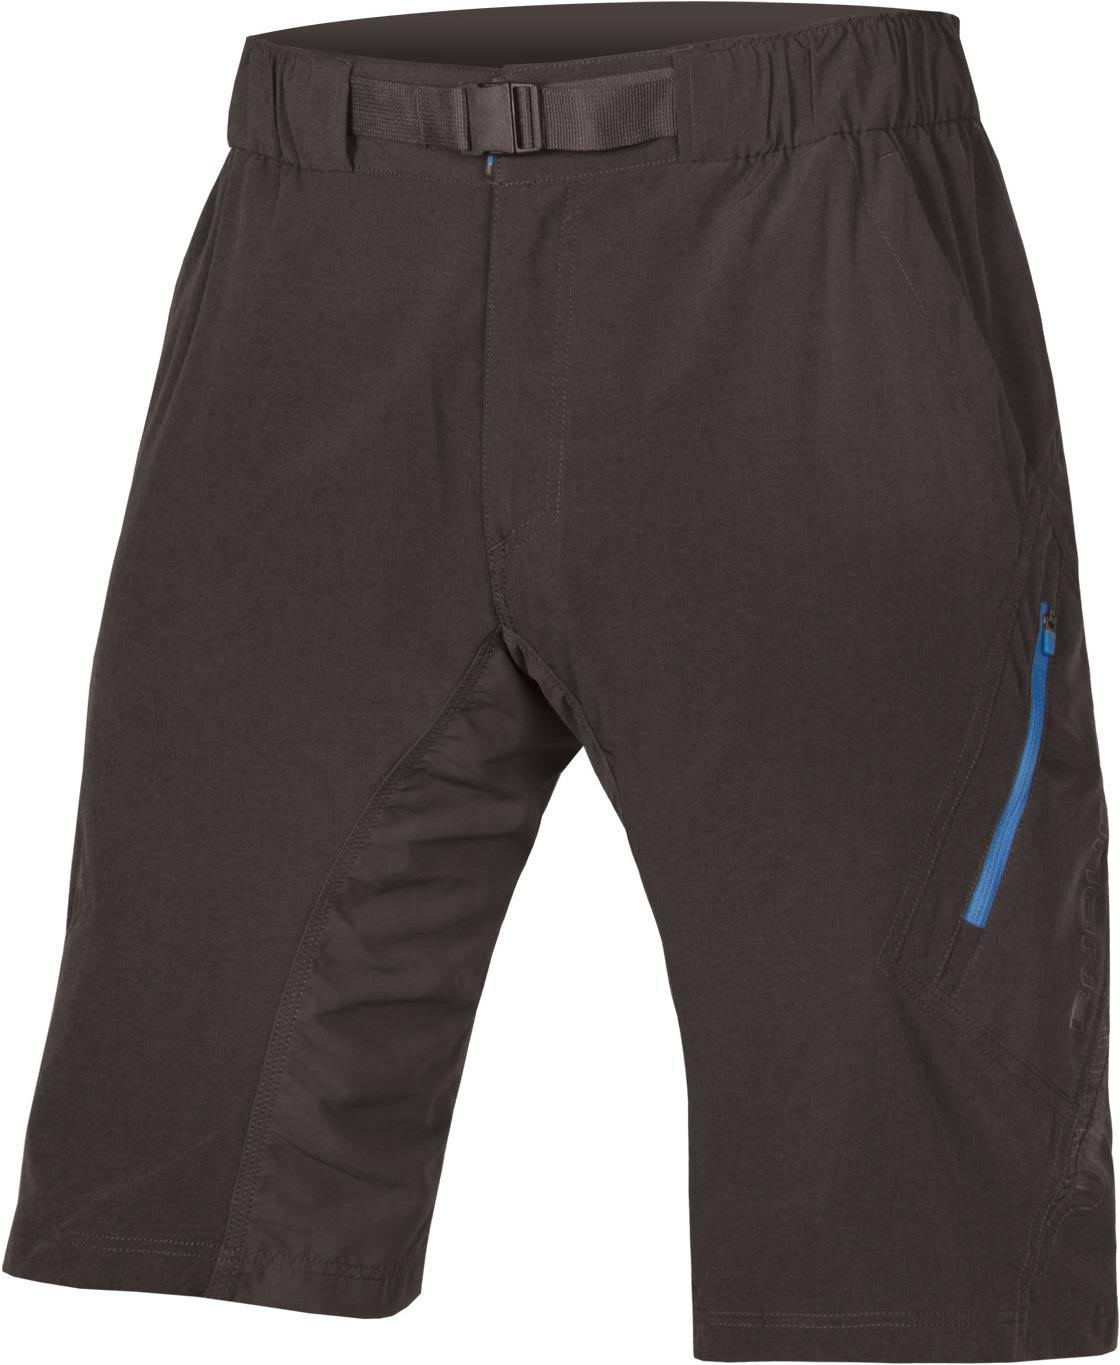 Endura Men's Hummvee Lite II Cycling Short - Grey, Large